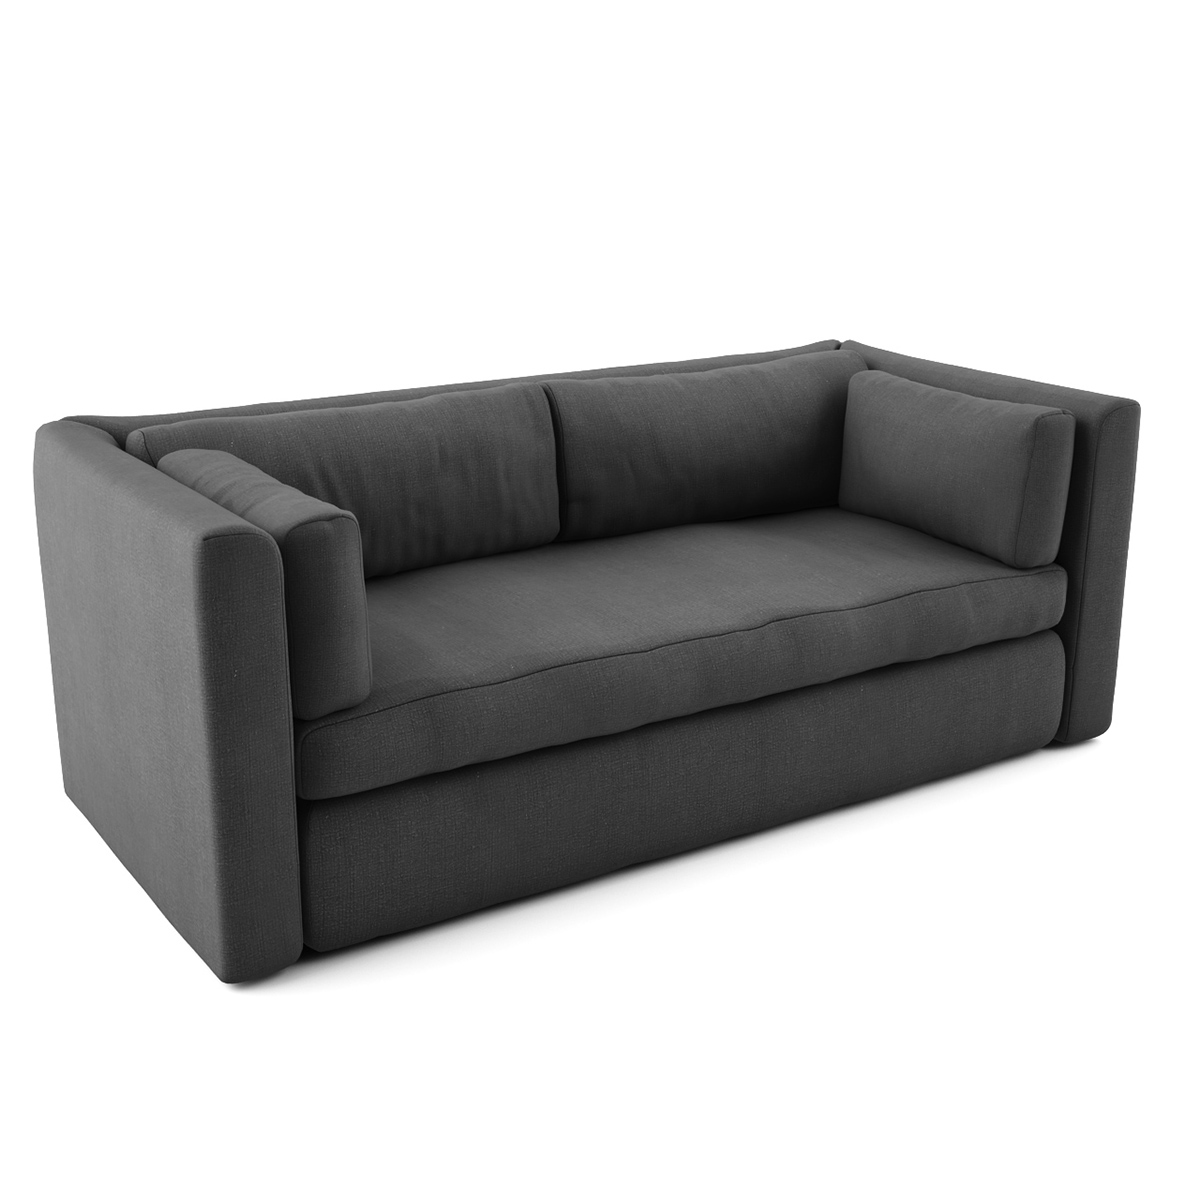 hay hackney sofa review wine king bueno baci living room